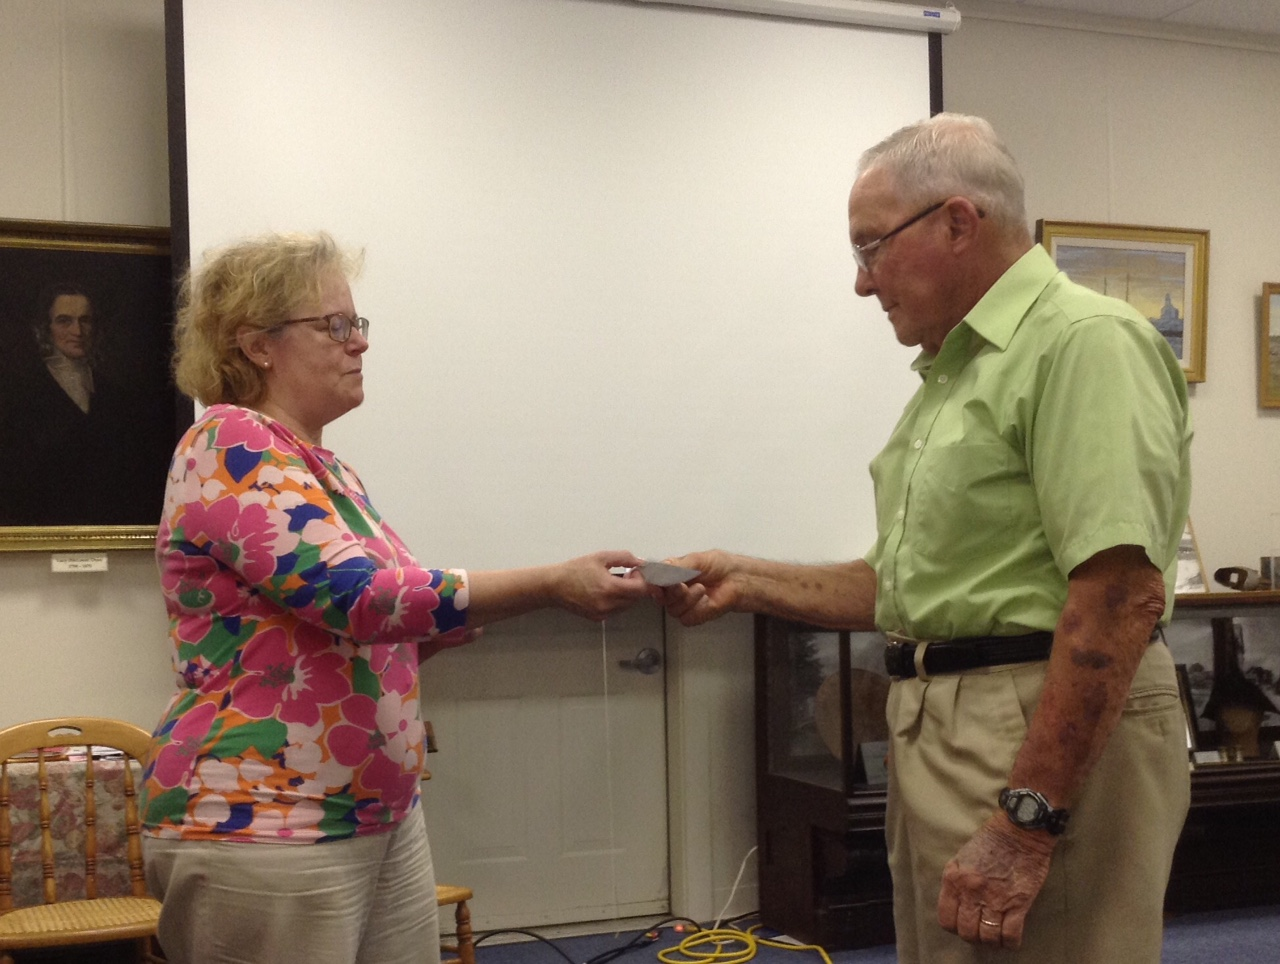 Ann Smith, treasurer of the Wessaweskeag Historical Society, hands the donation to Peter Markoon of the People's United Methodist Church.